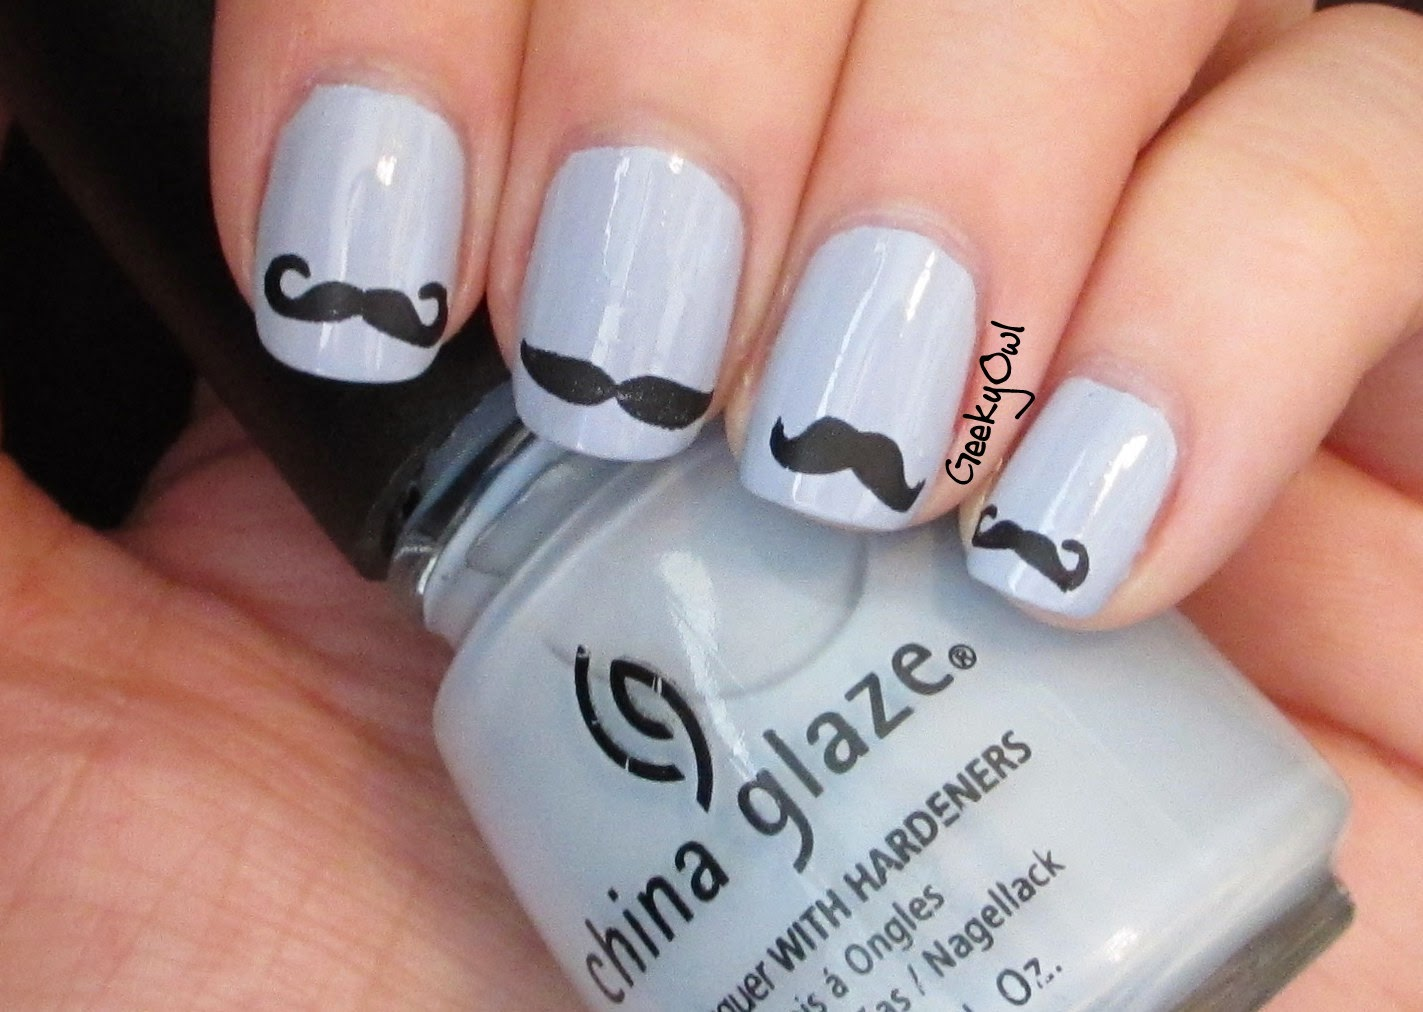 http://geekyowl.blogspot.com/2012/07/china-glaze-agent-lavender-in-disguise.html